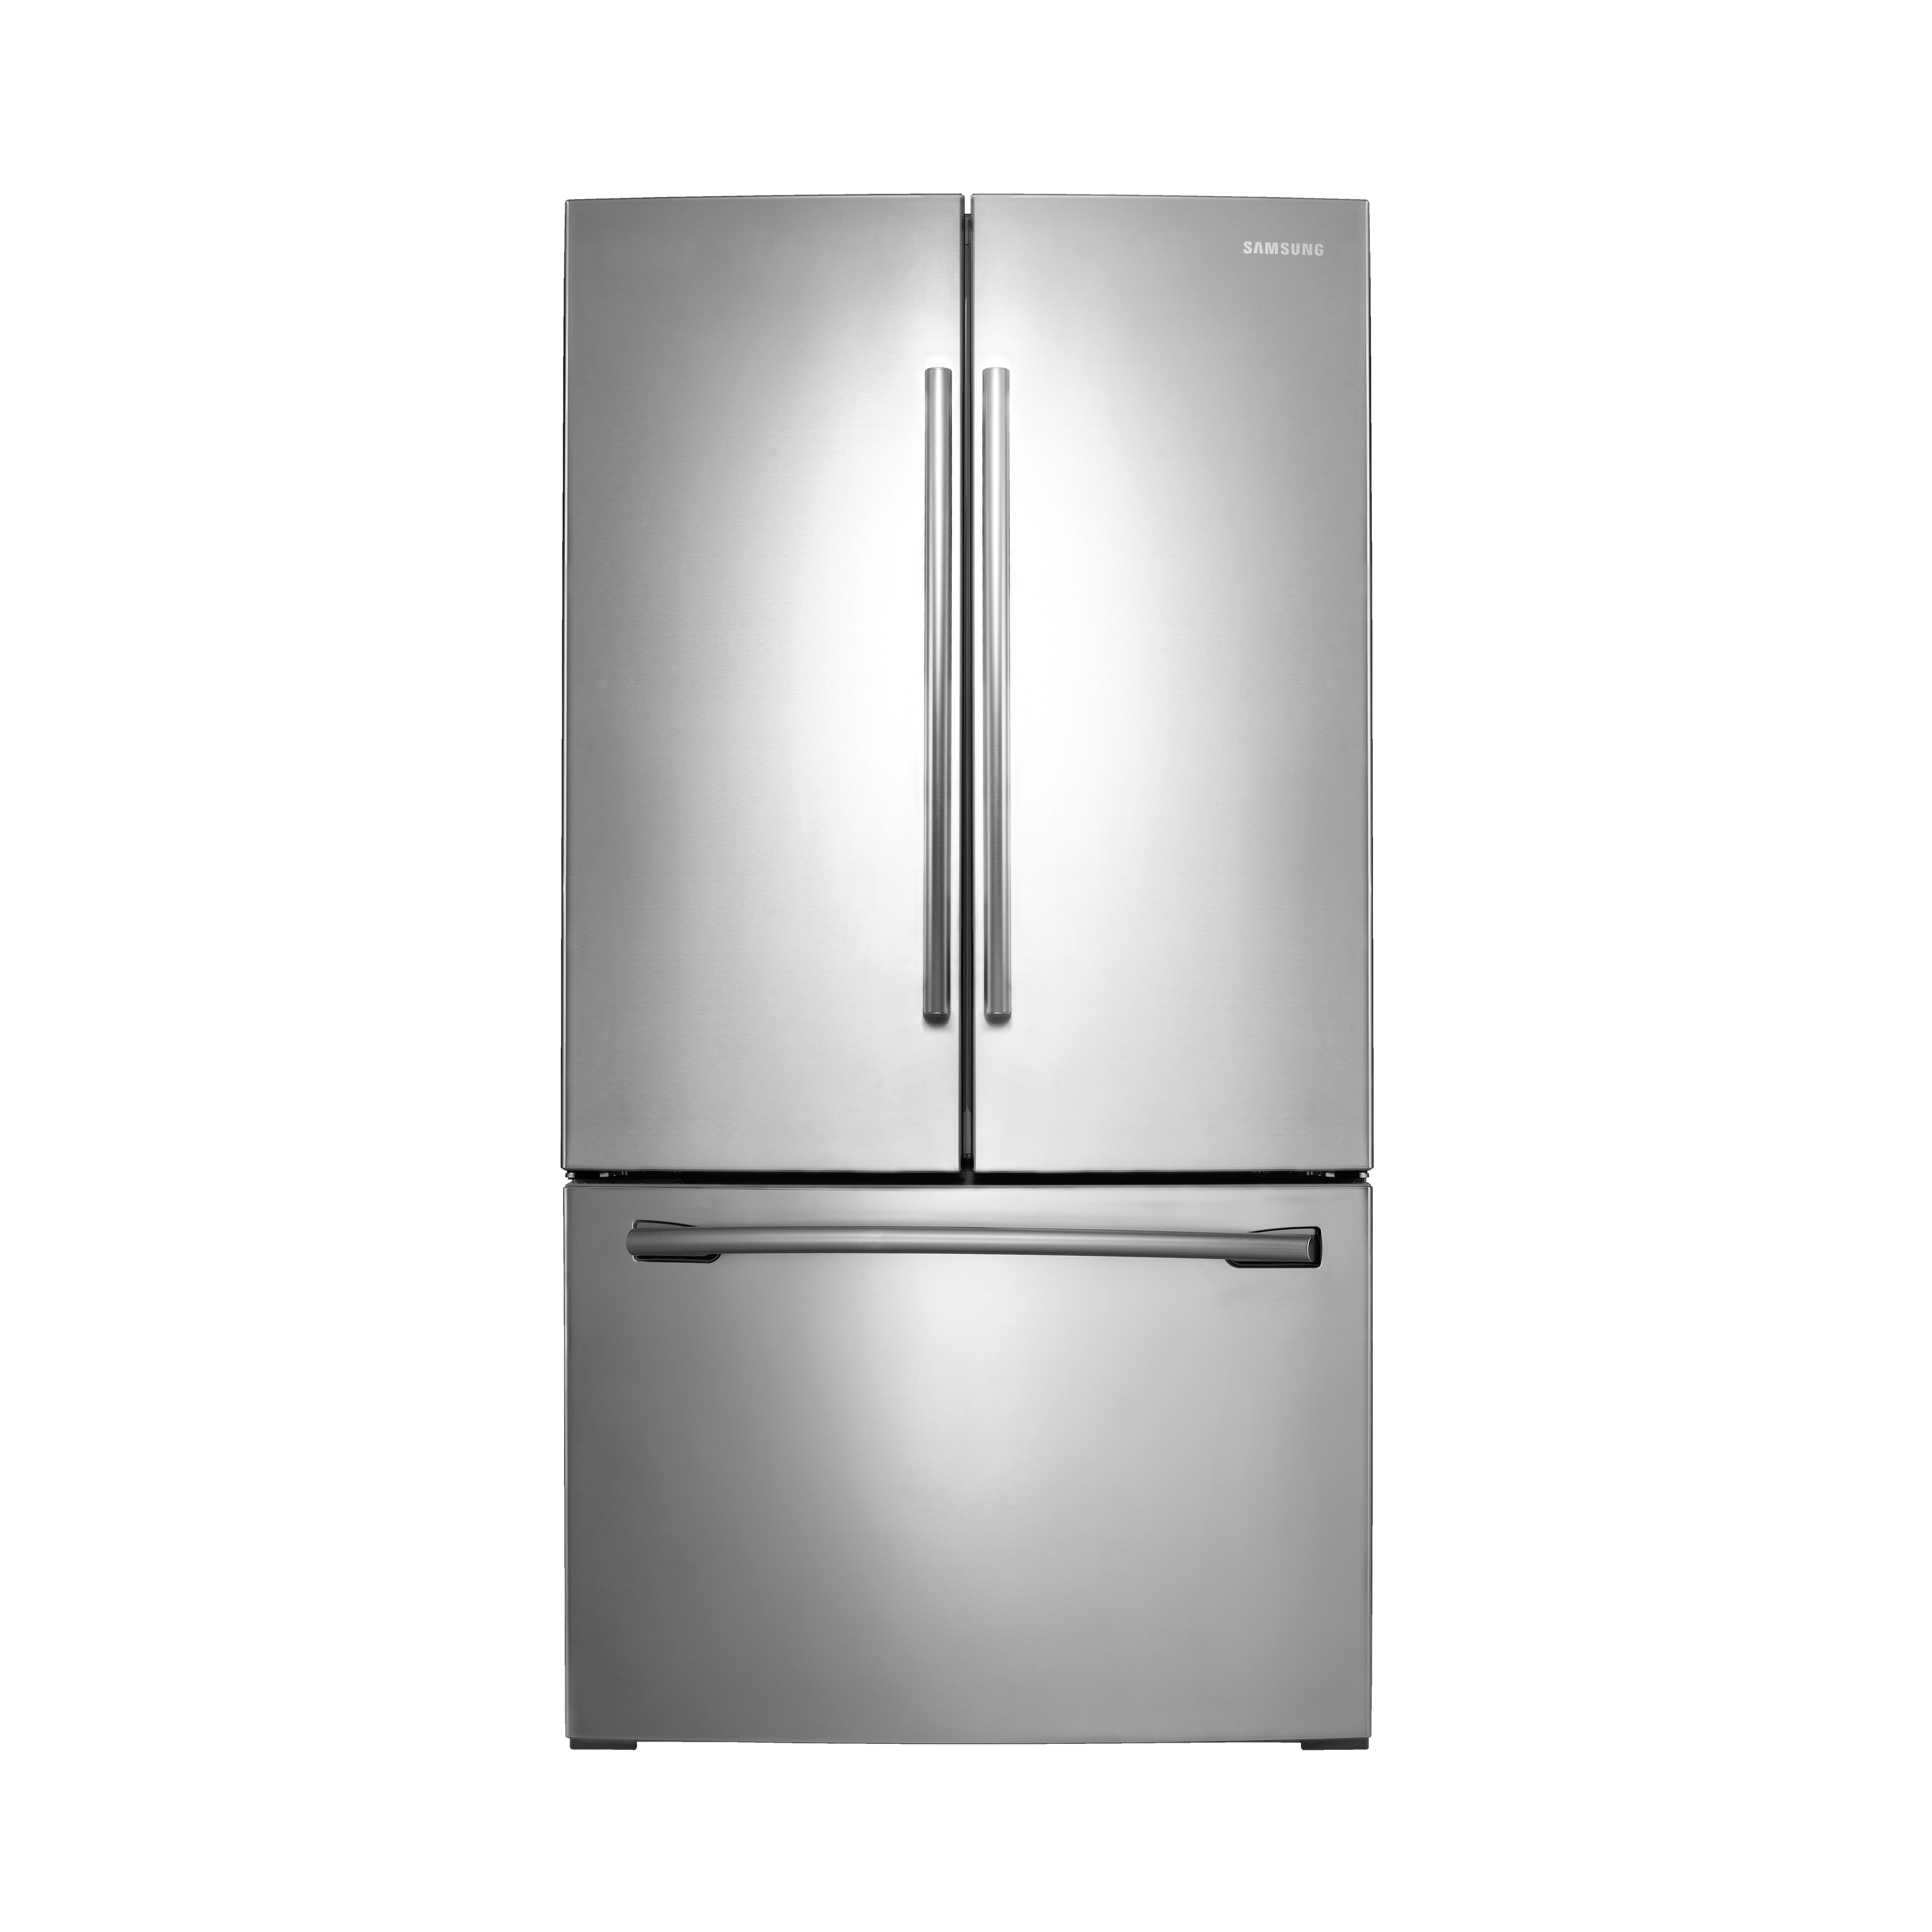 rf26hfendsr 36 french door refrigerator with twin cooling plus system [ 3000 x 3000 Pixel ]